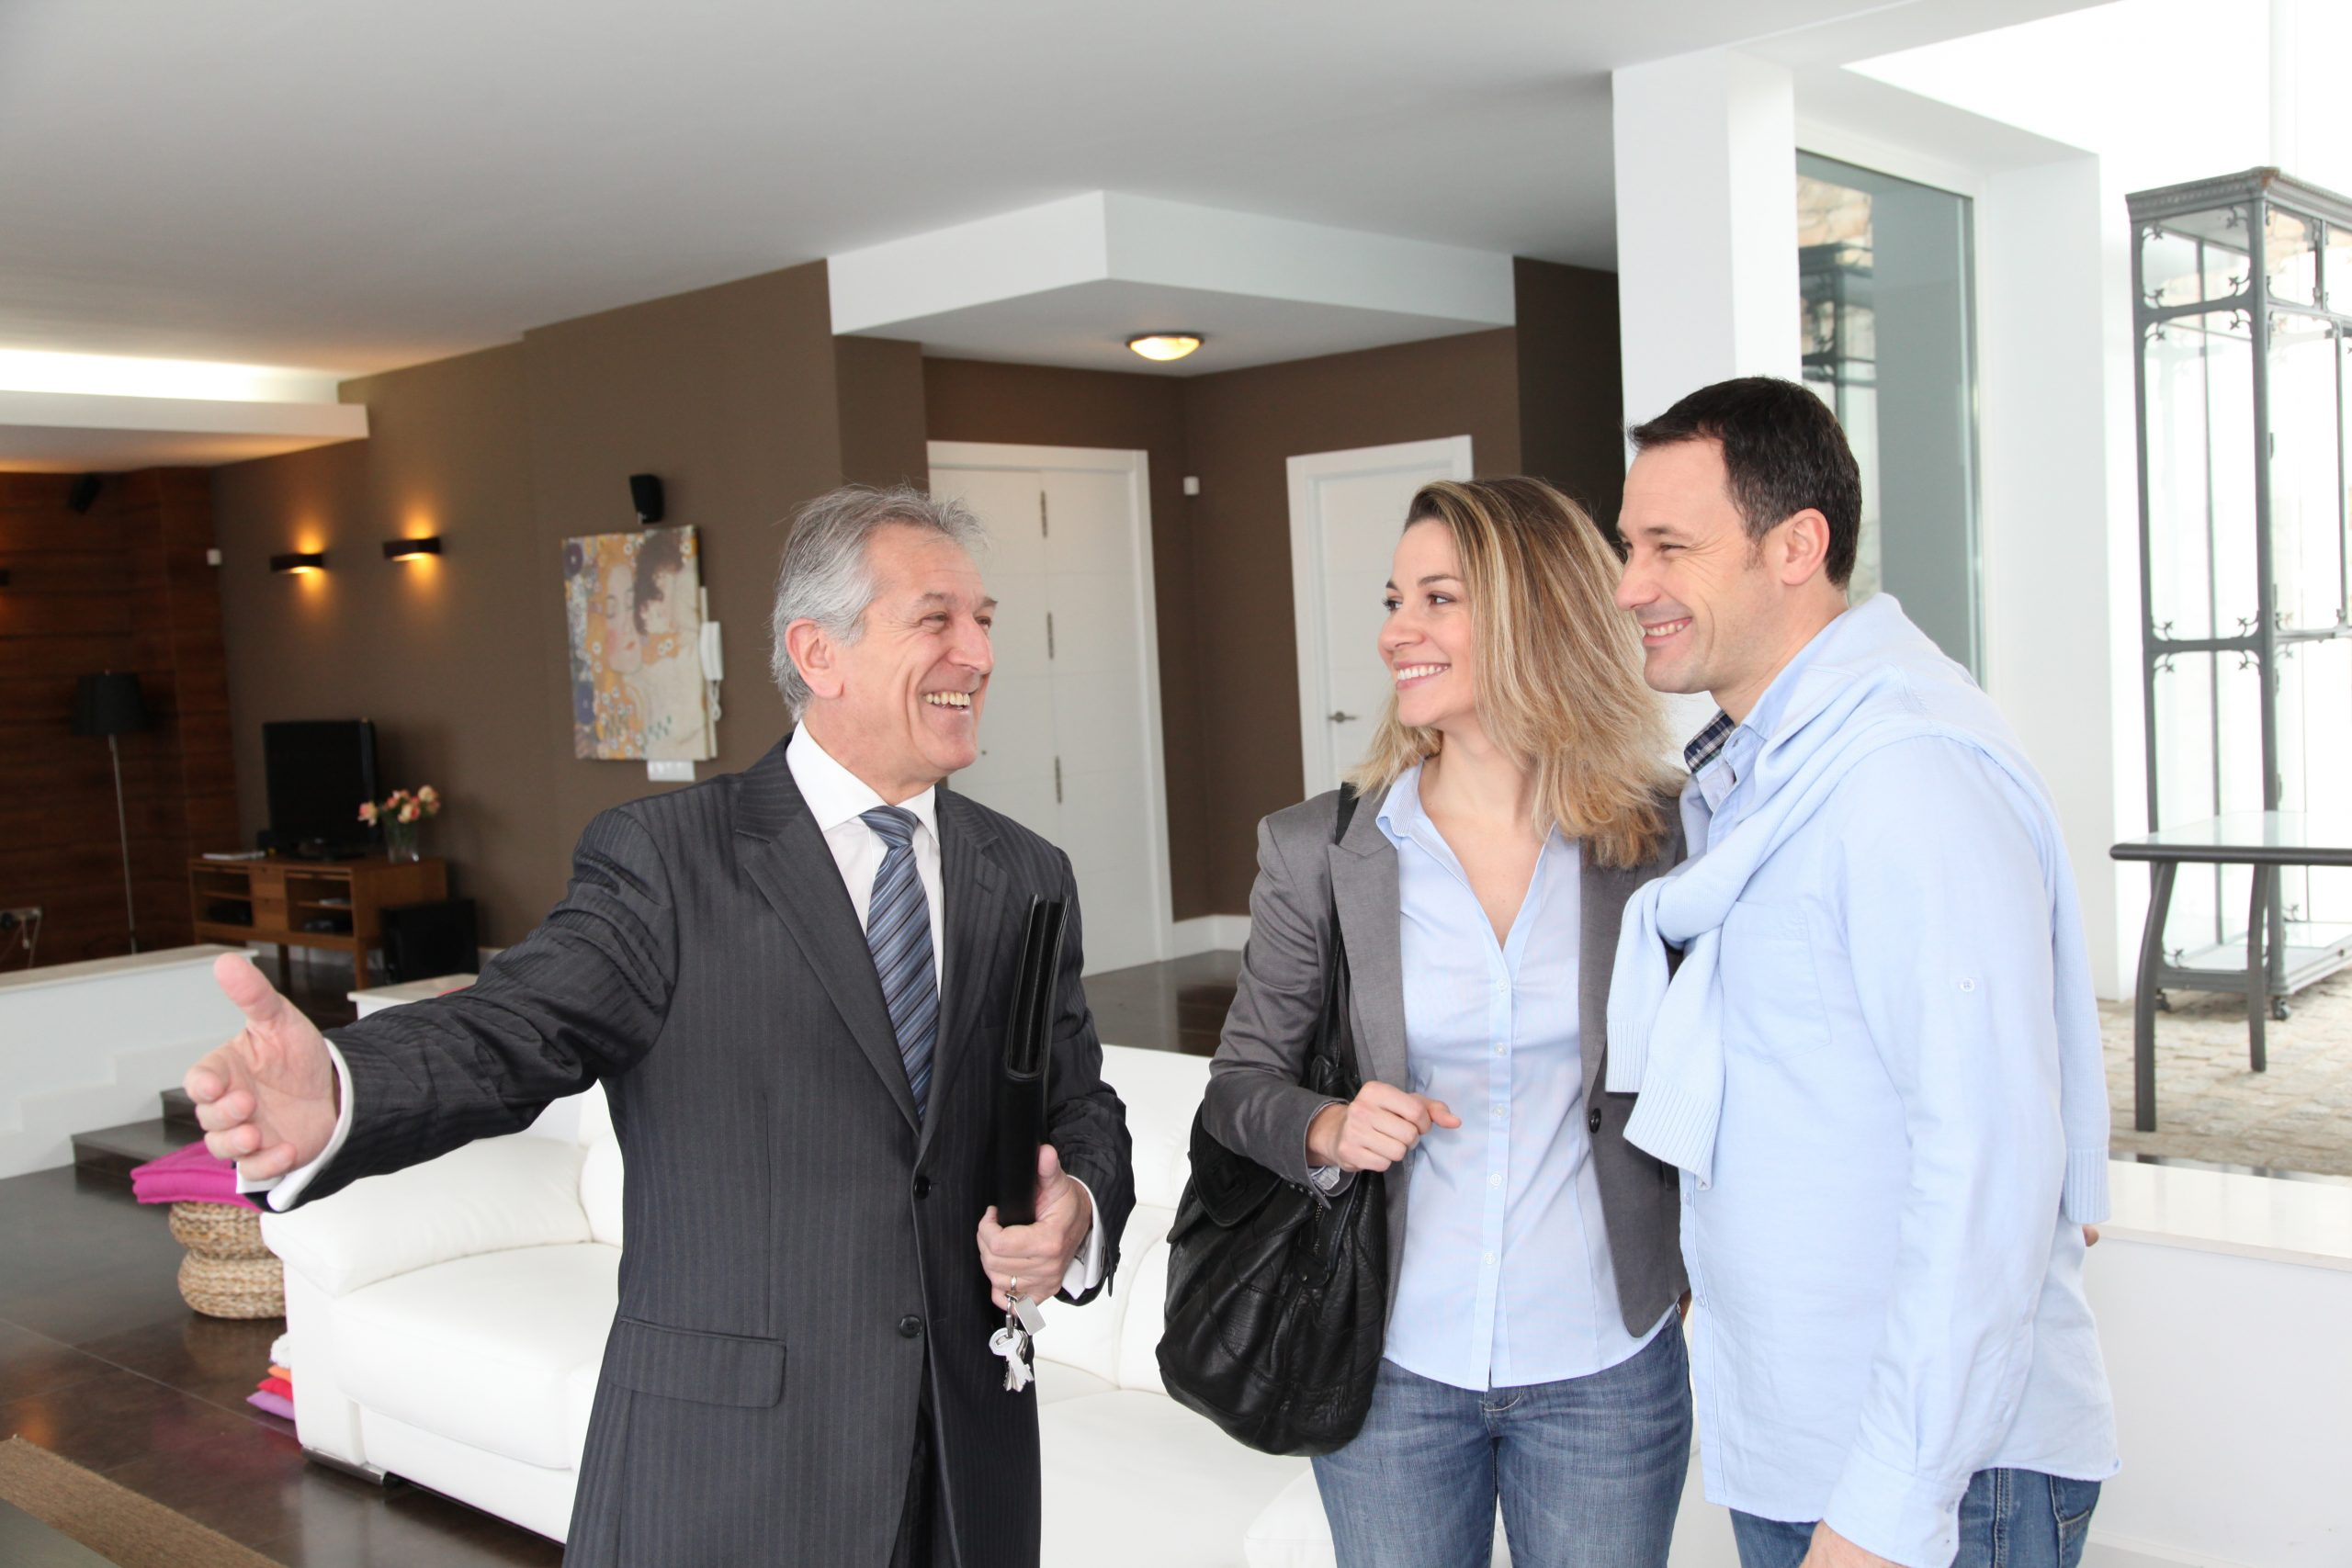 San Diego Real Estate Agent What They Do